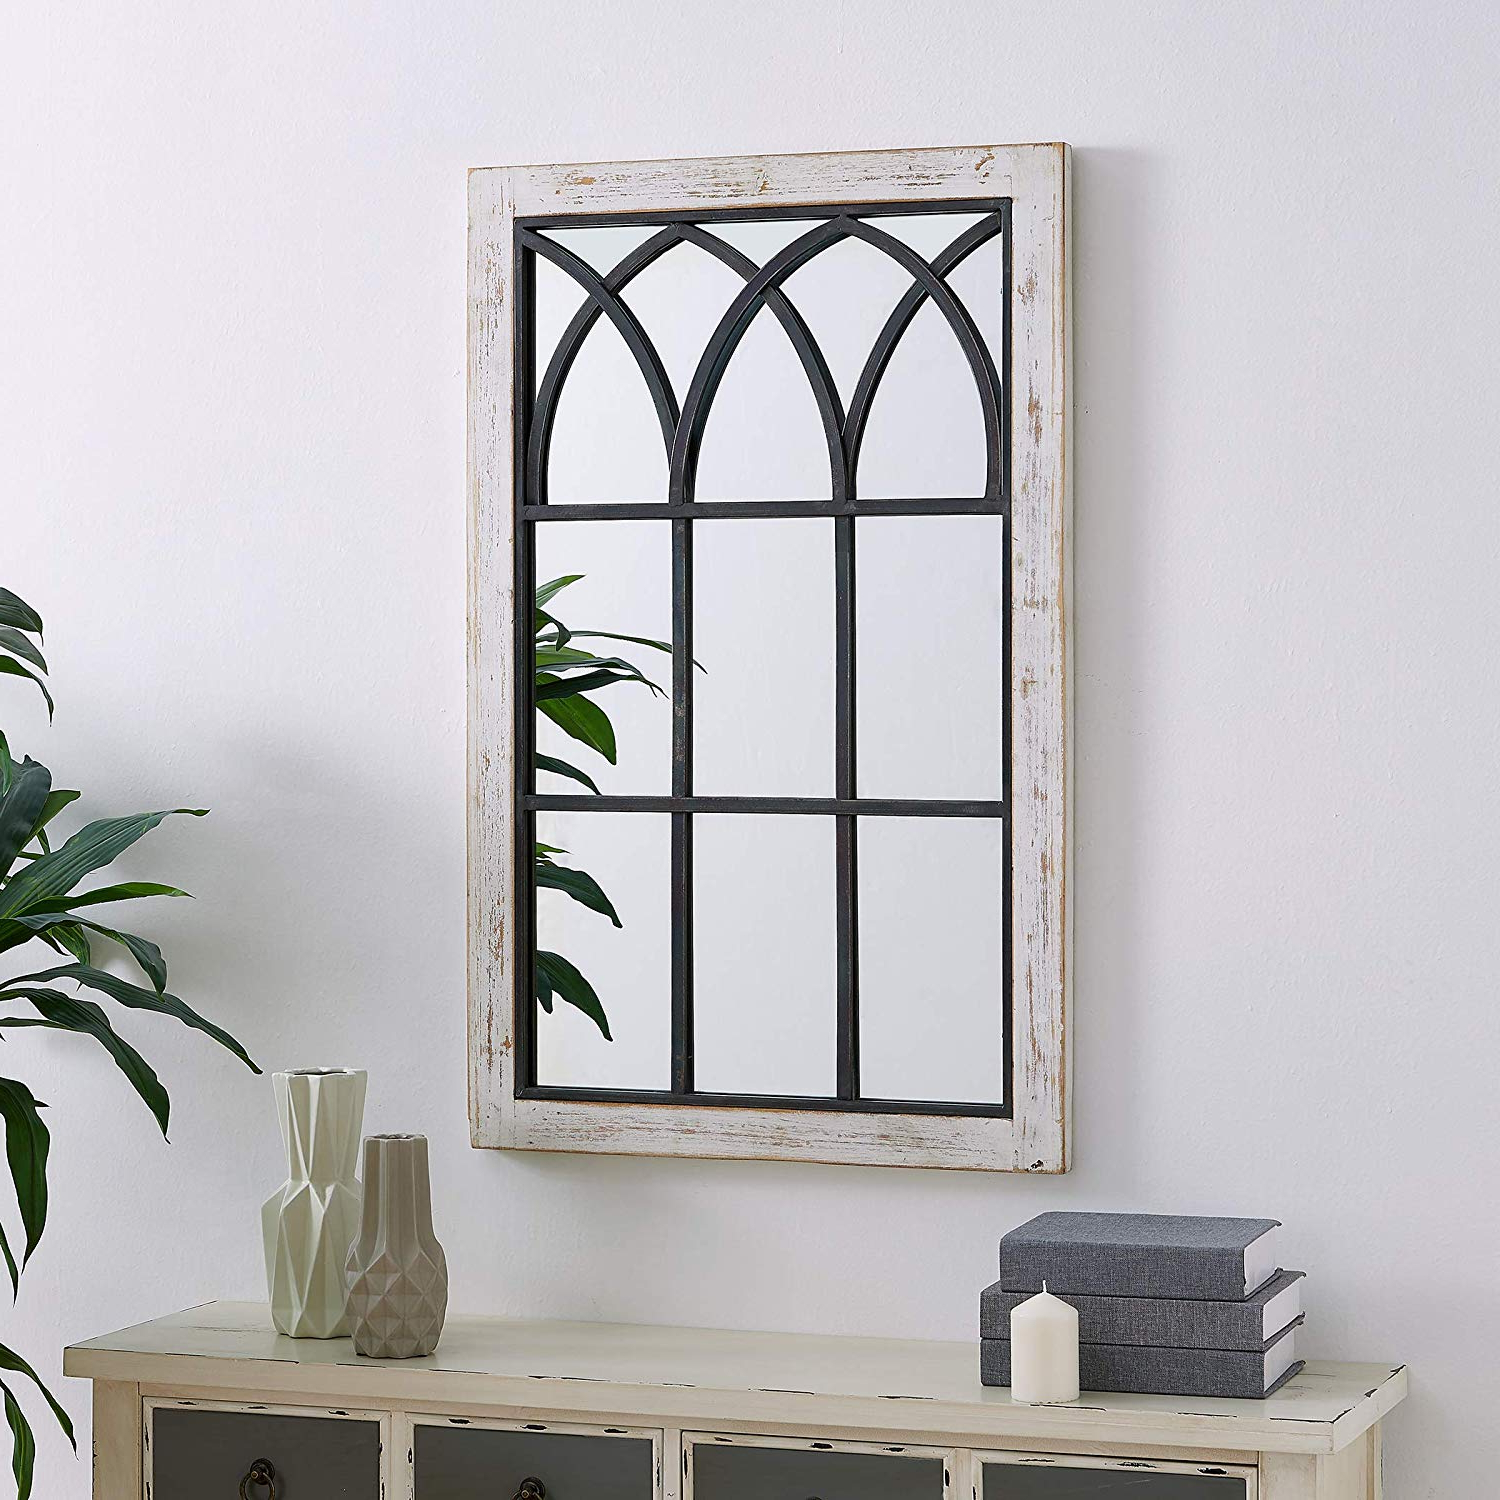 """Firstime & Co. 70024 Vista Arched Window Accent Wall Mirror, 37.5"""" X 24"""",  Distressed White Throughout Trendy Window Wall Mirrors (Gallery 19 of 20)"""